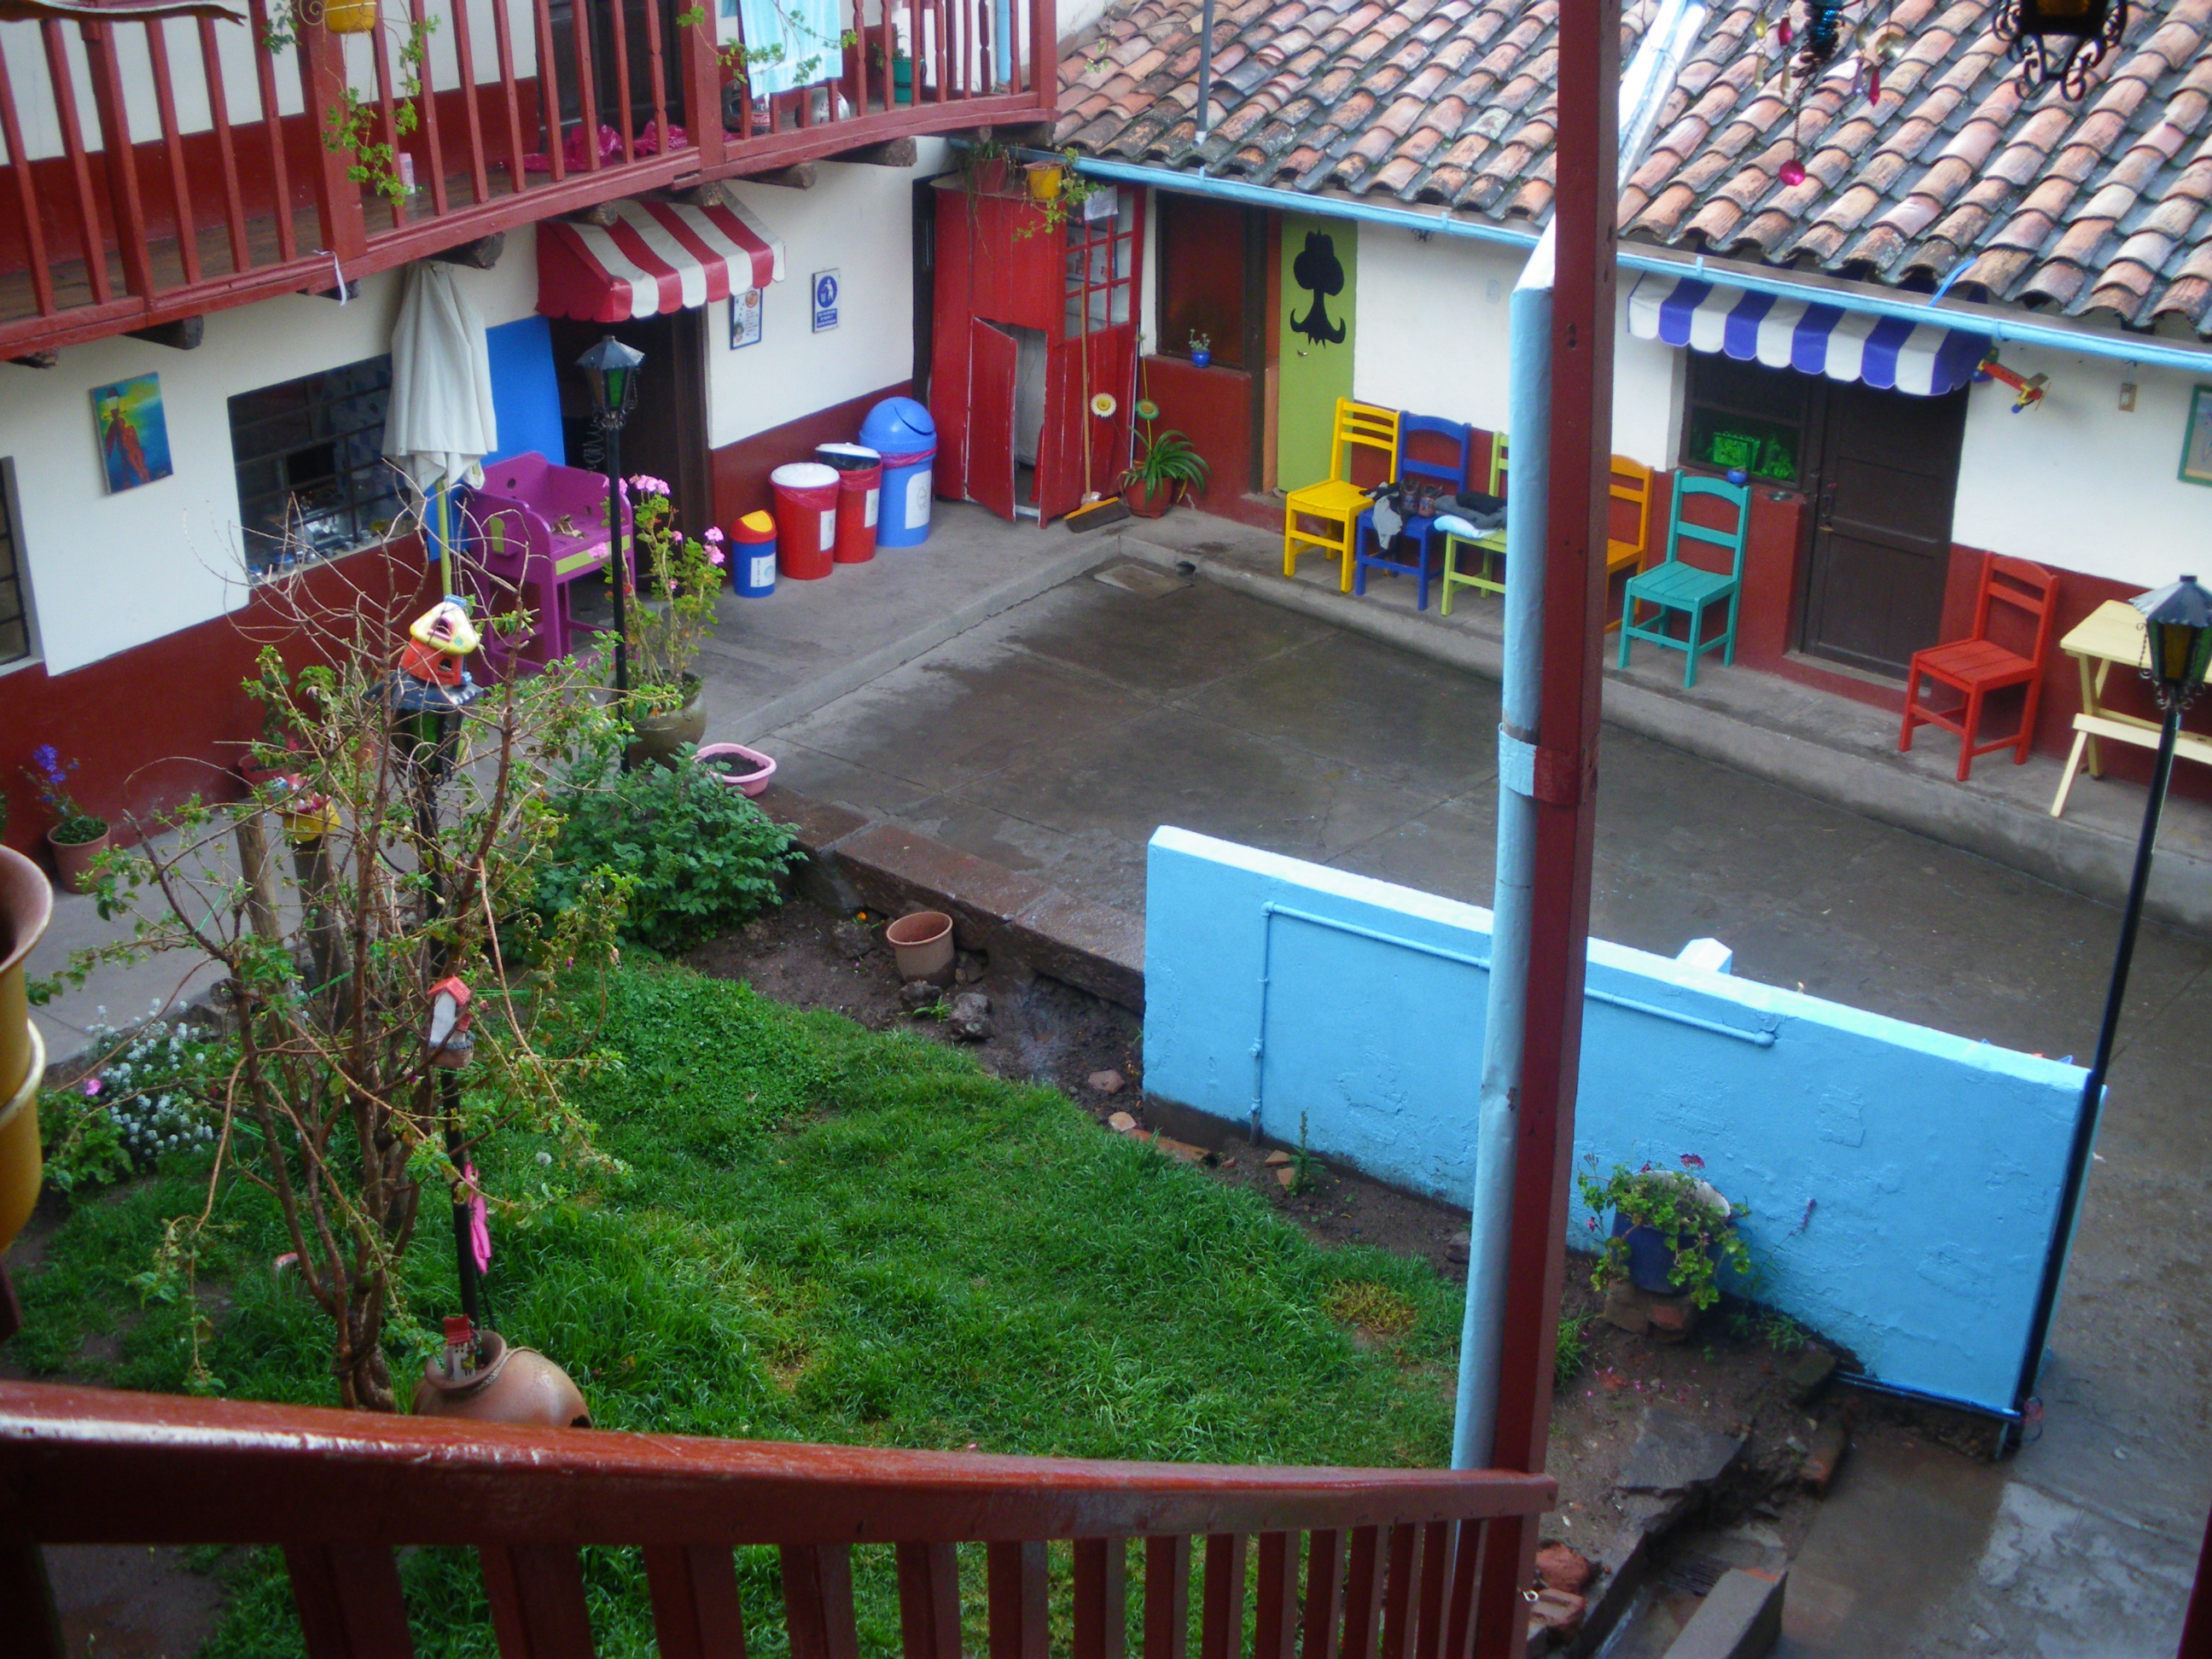 The Courtyard from above.